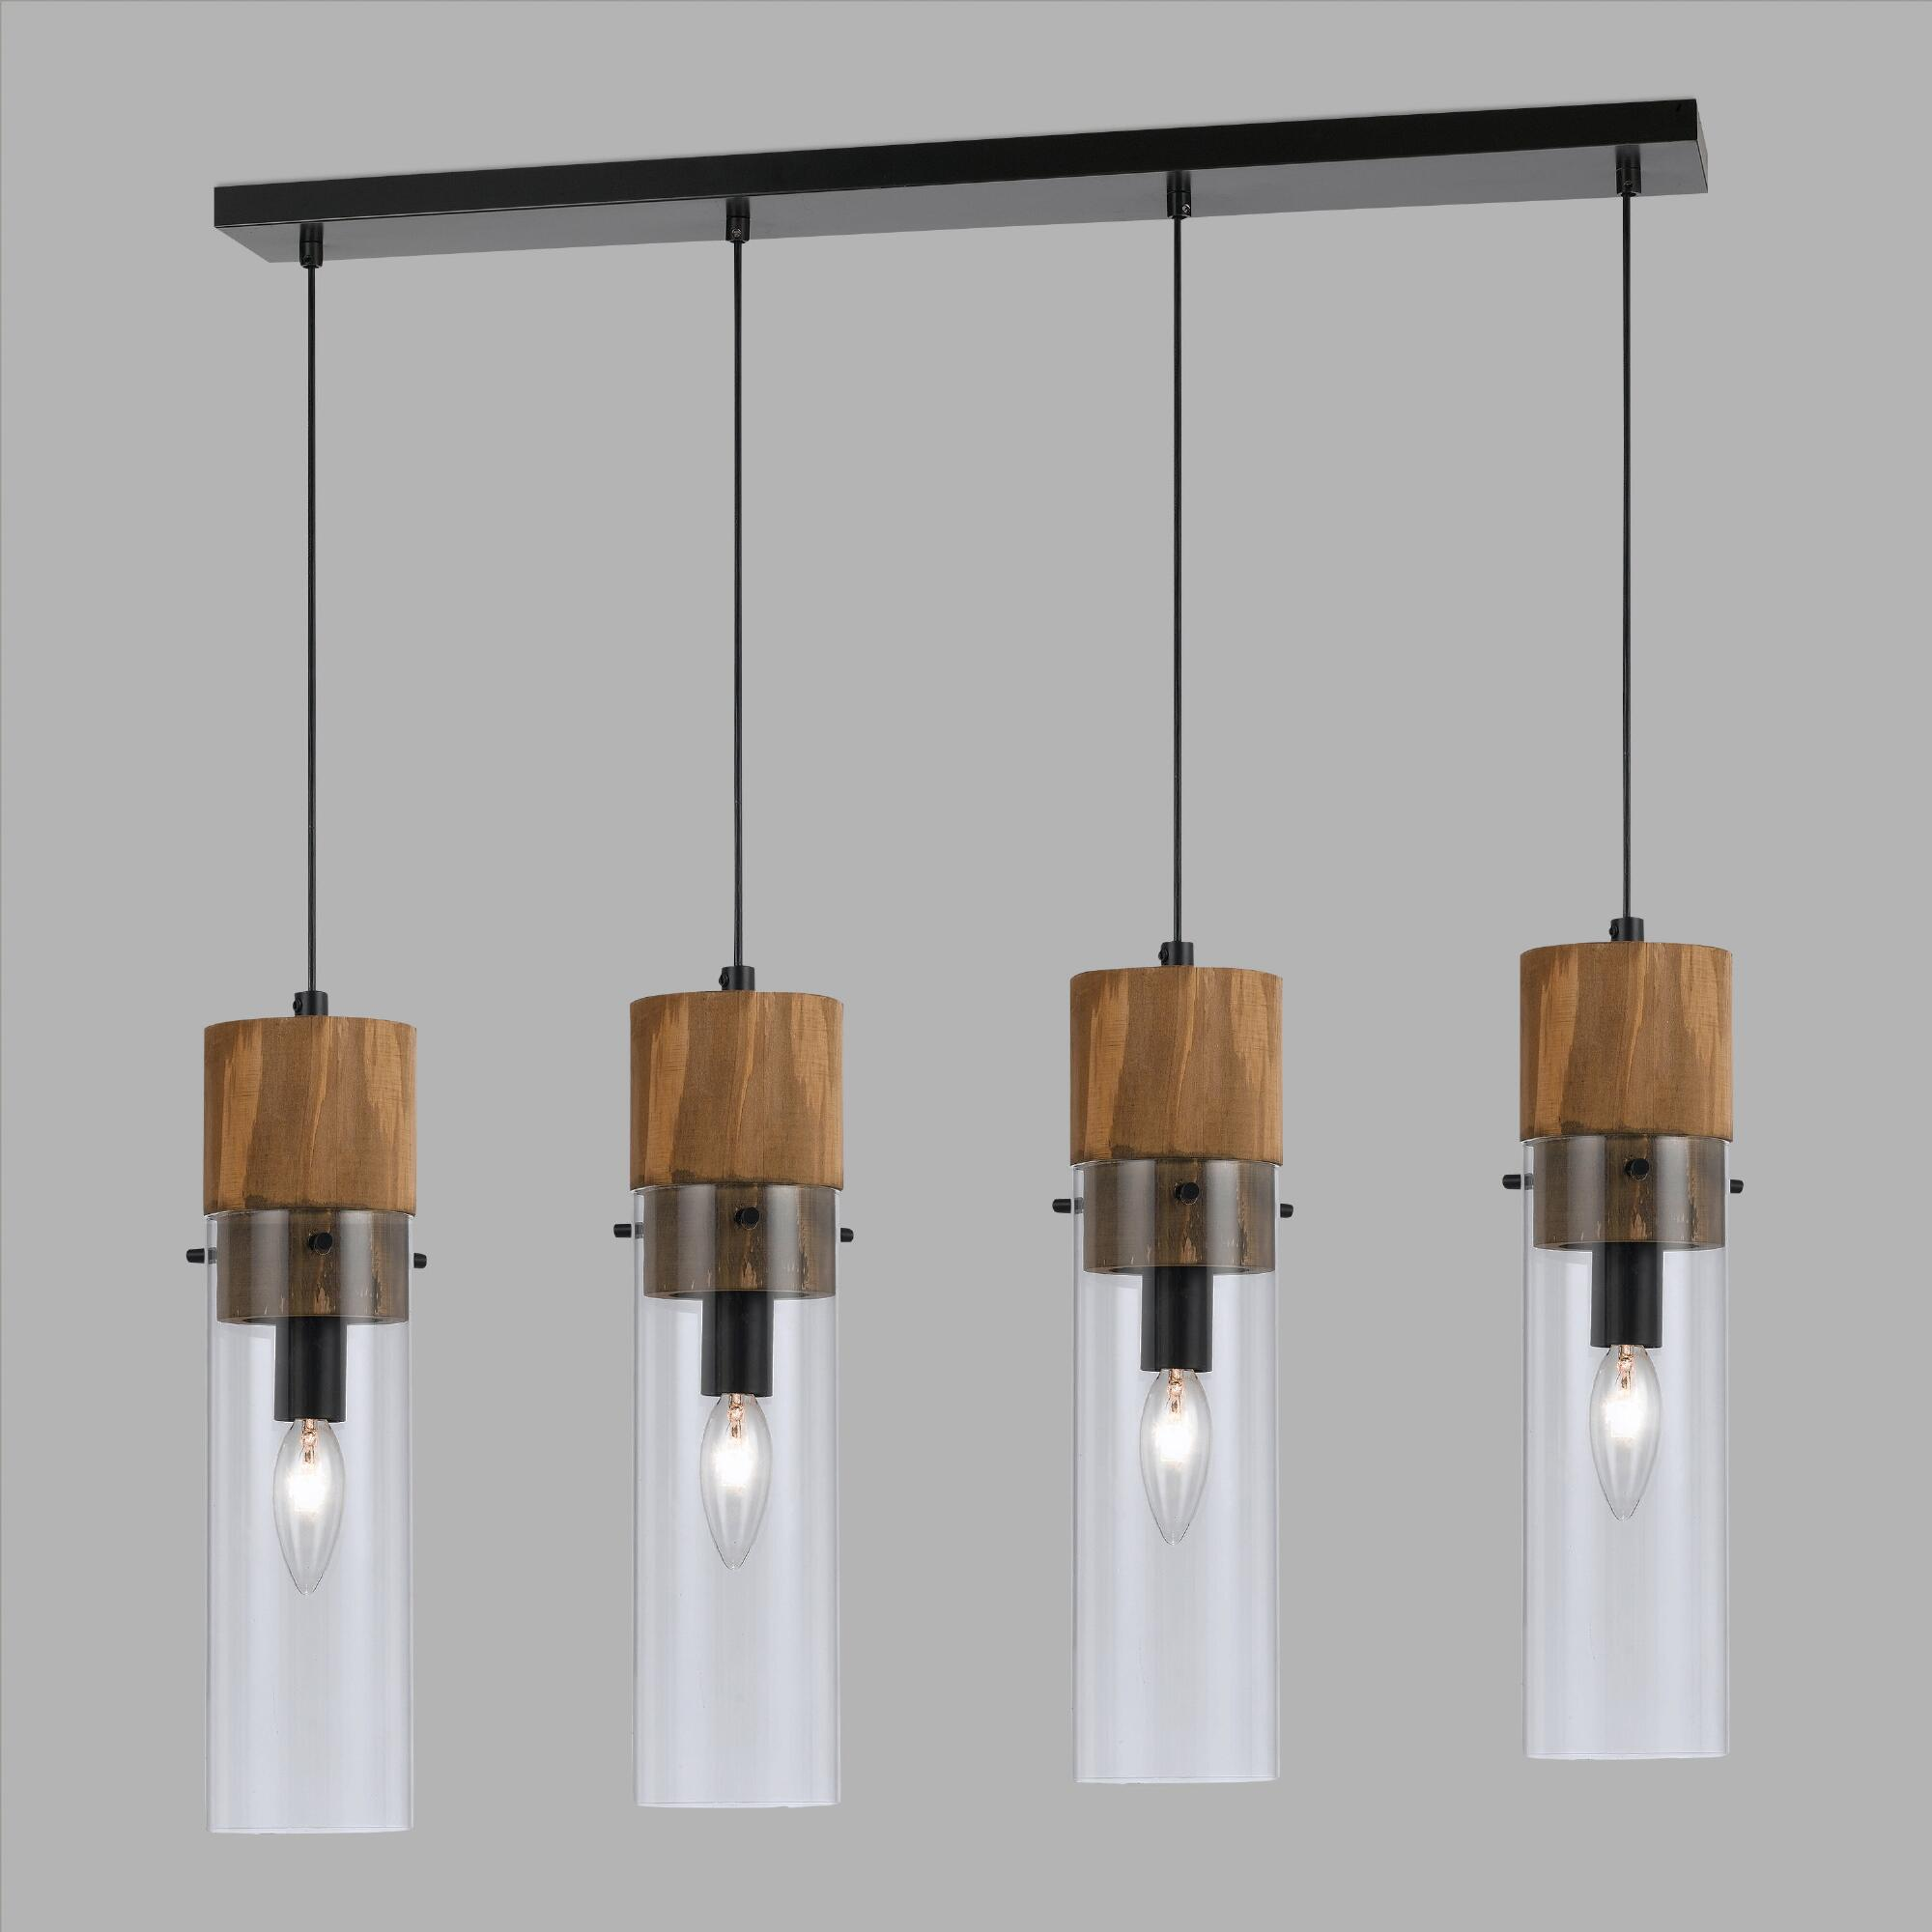 Wood and Glass 4-Light Pendant Lamp by World Market